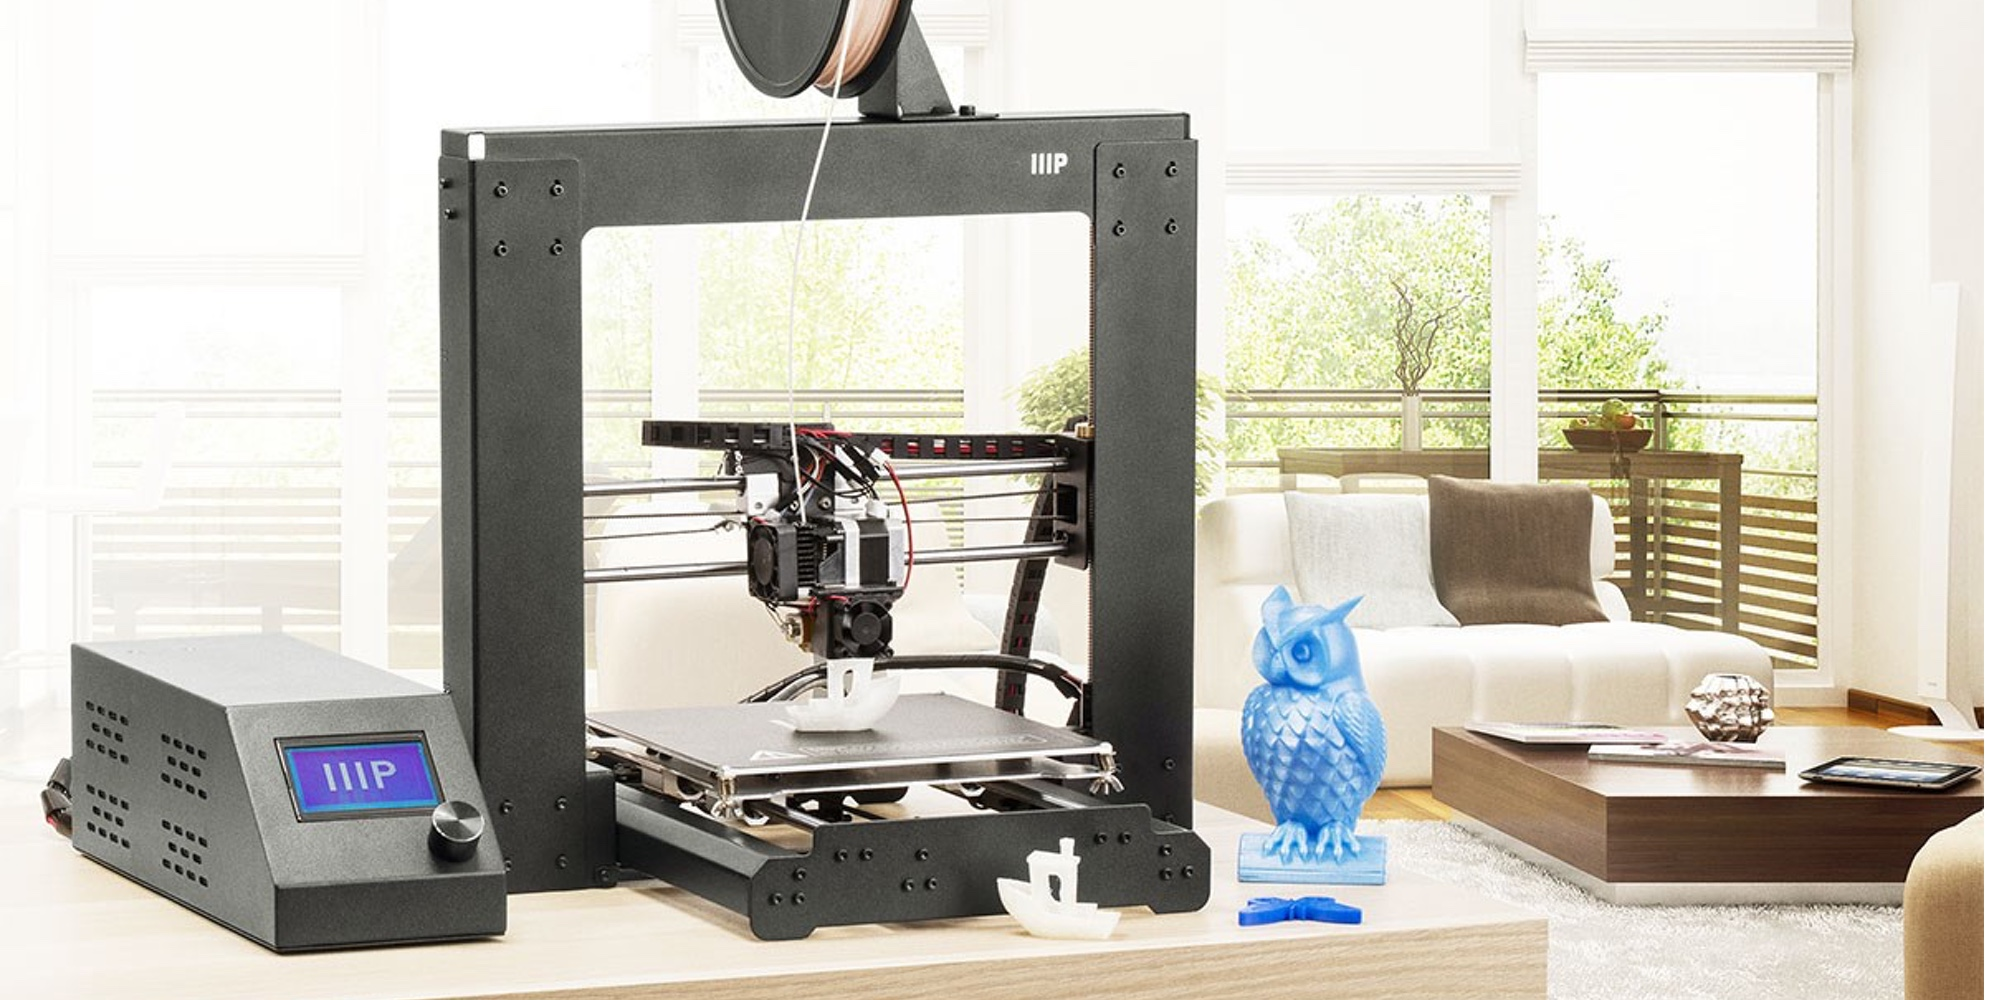 Create just about anything w/ Monoprice's Maker Select Plus 3D Printer at $275 ($125 off)